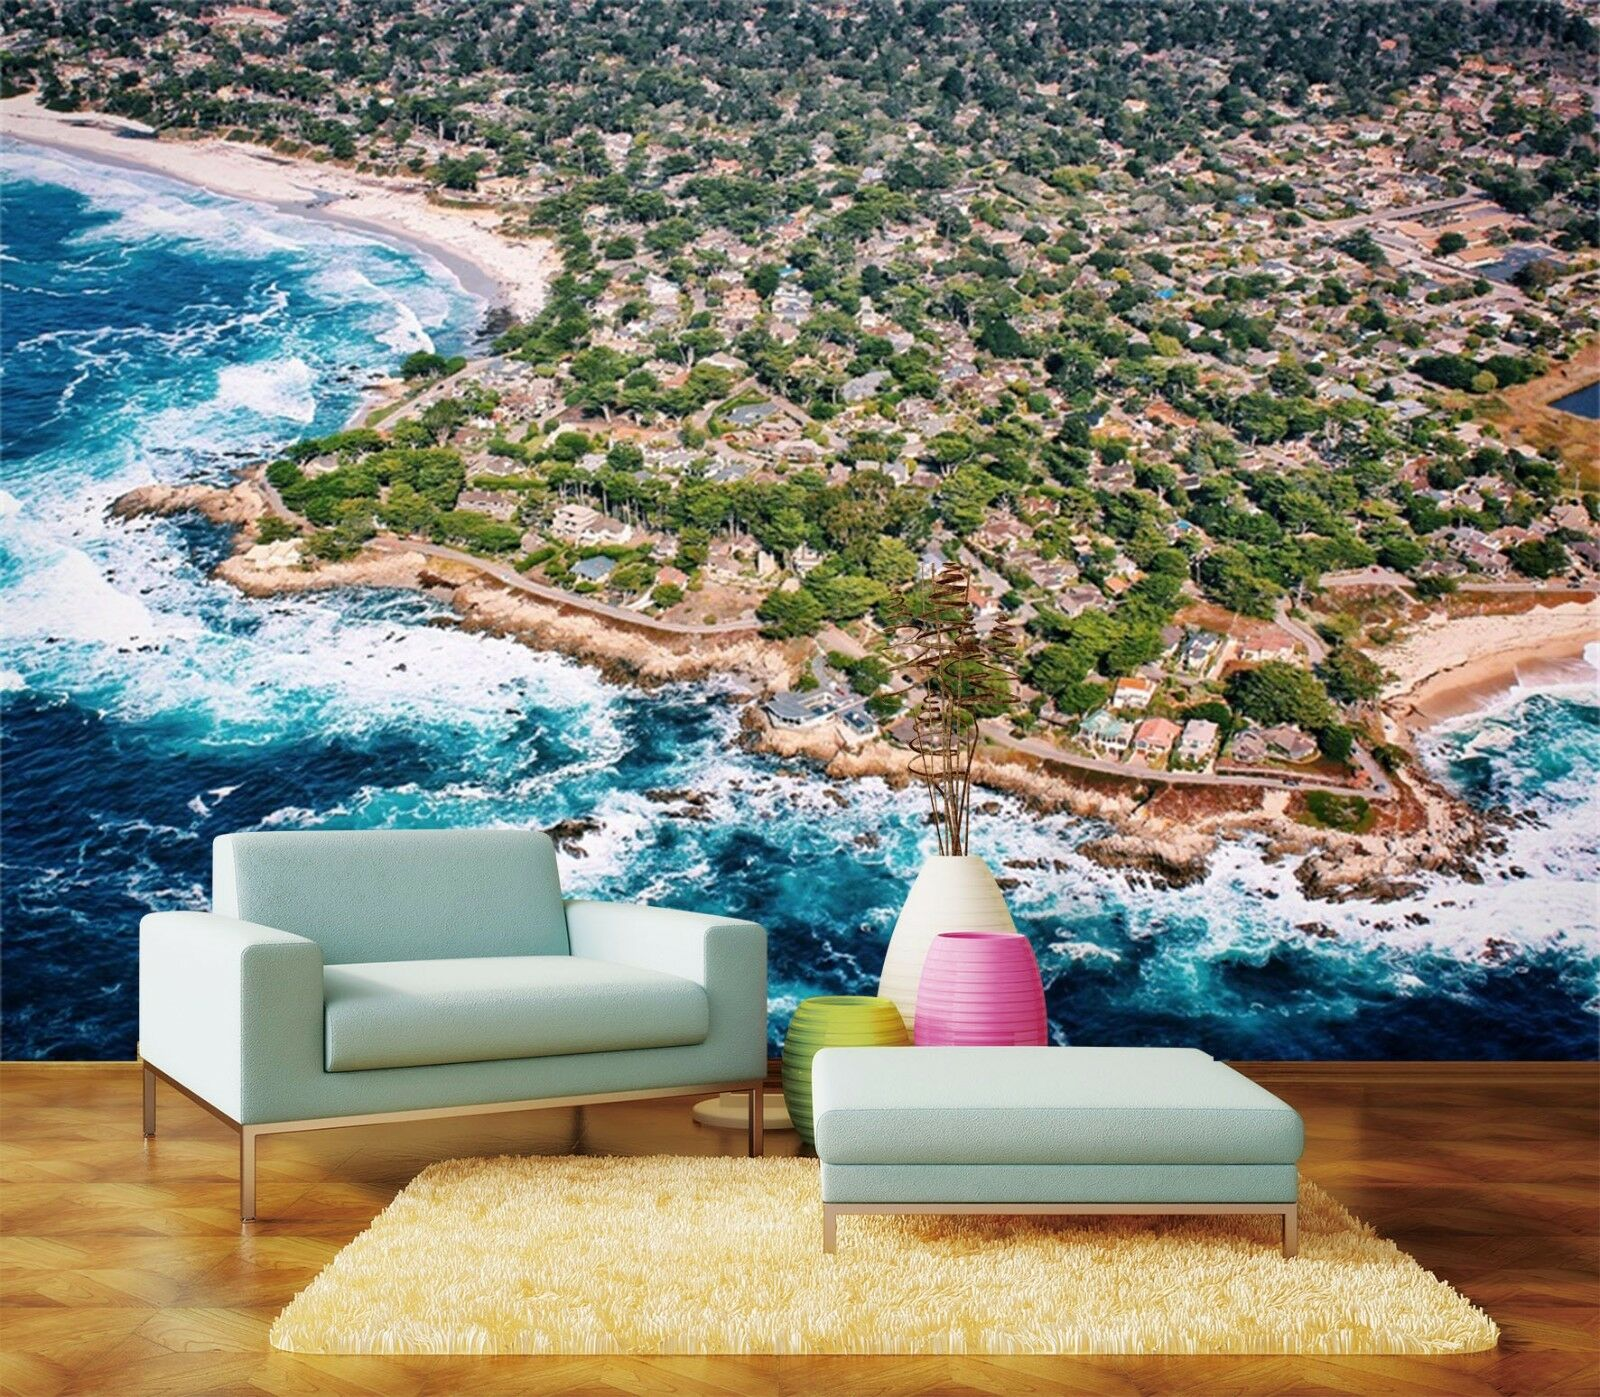 3D Seaside City 723 Wall Paper Wall Print Decal Wall Deco Indoor AJ Wall Paper